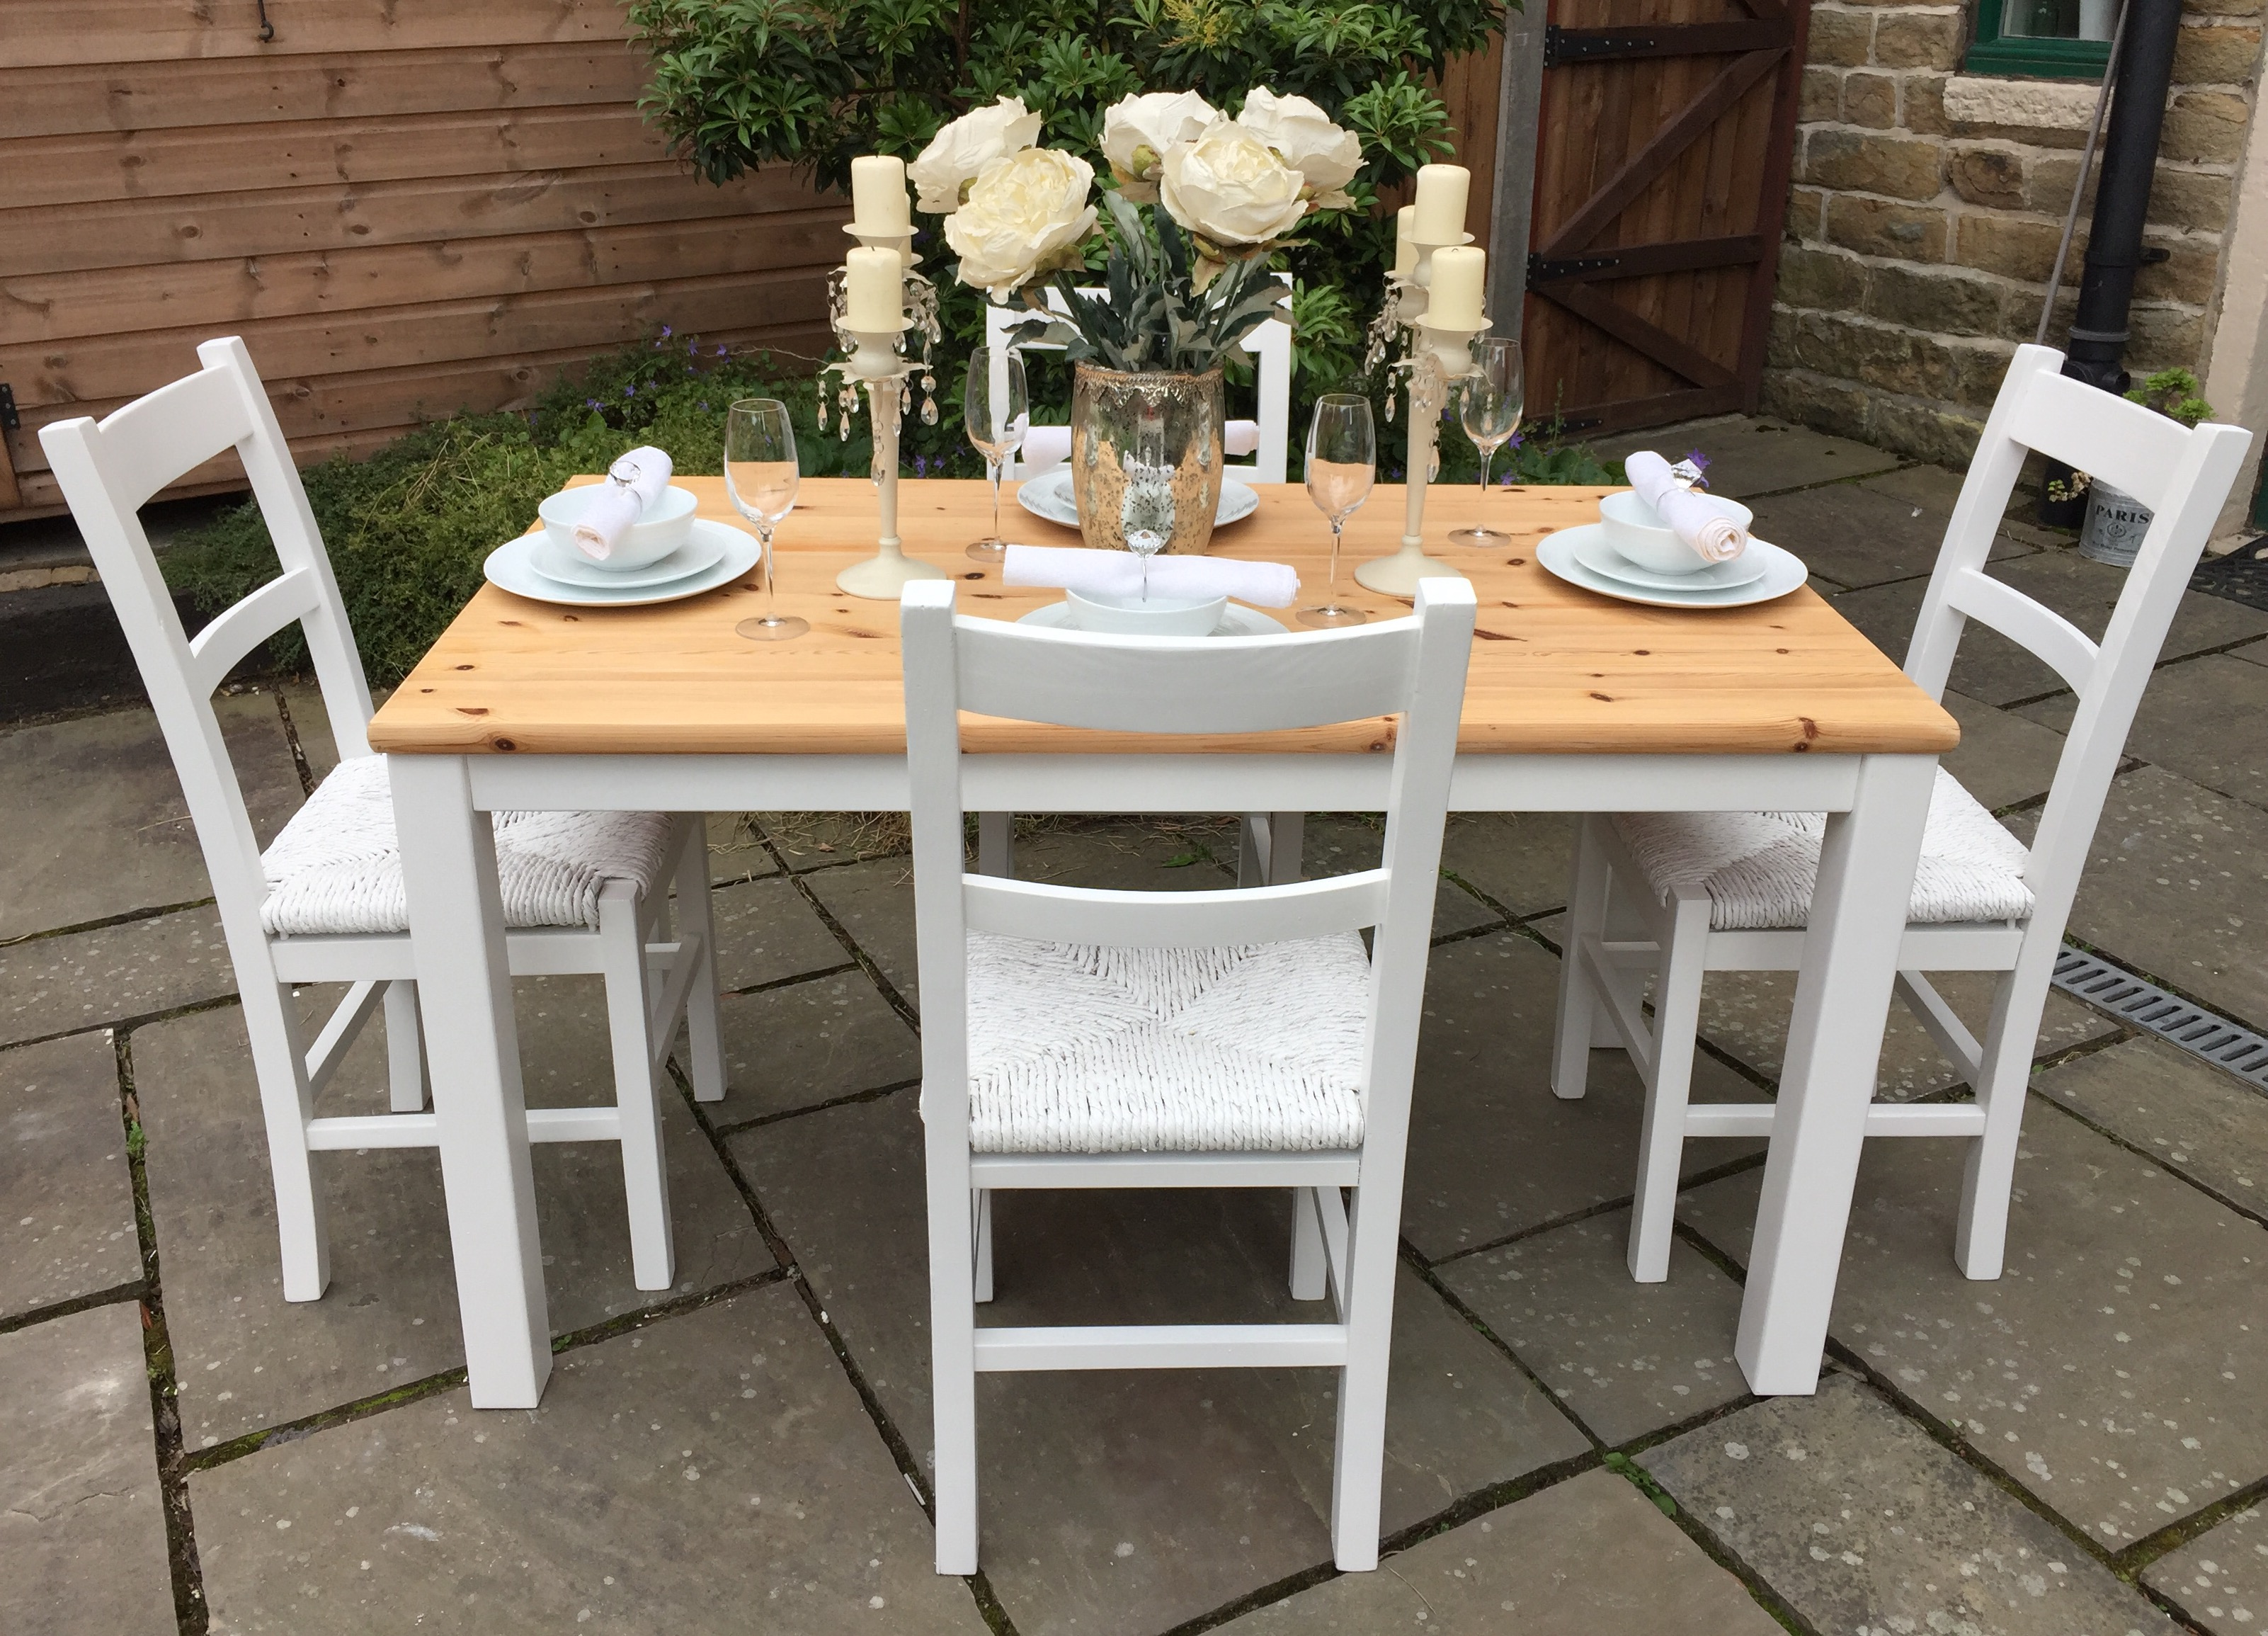 Dining Table & 6 Chairs ~ Available as a 4 or 6 Seater set!